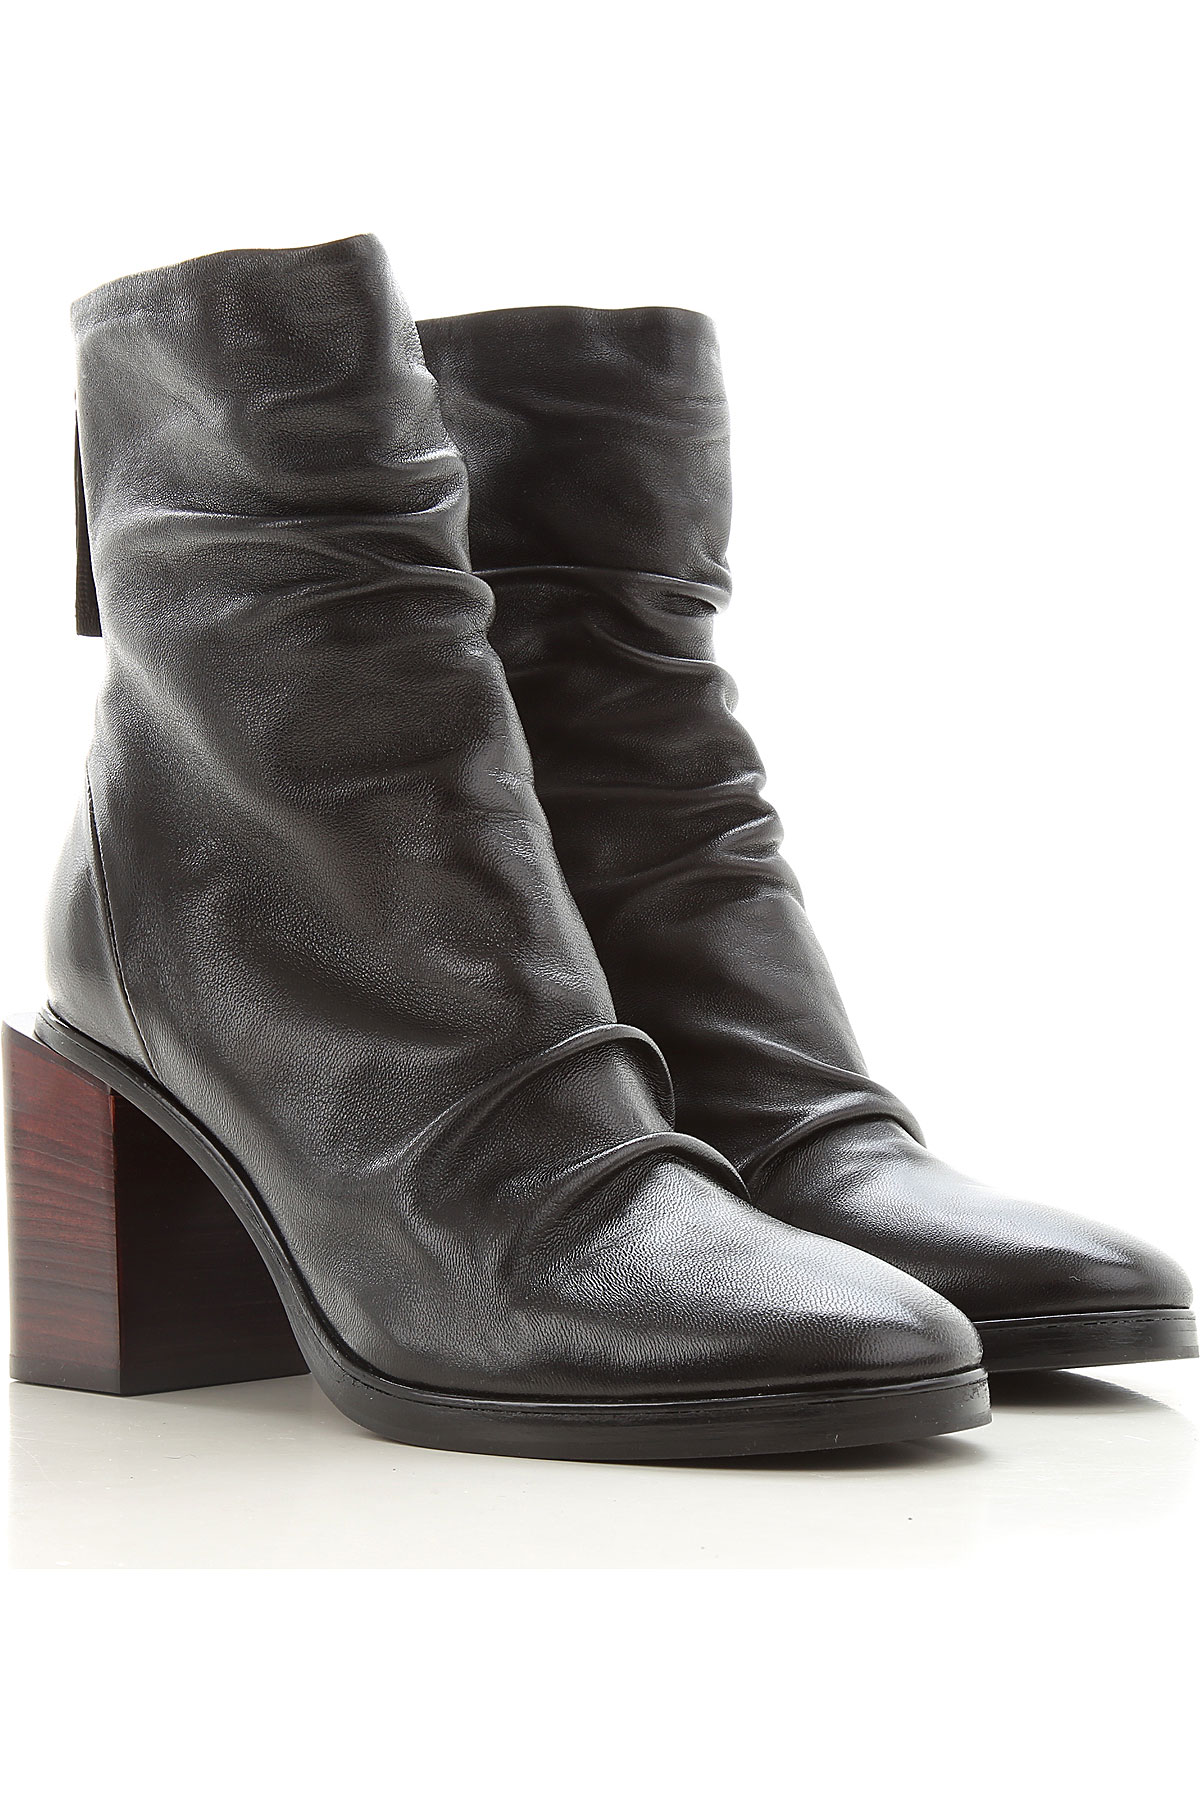 Halmanera Boots for Women, Booties, Black, Leather, 2019, 6 7 8 9